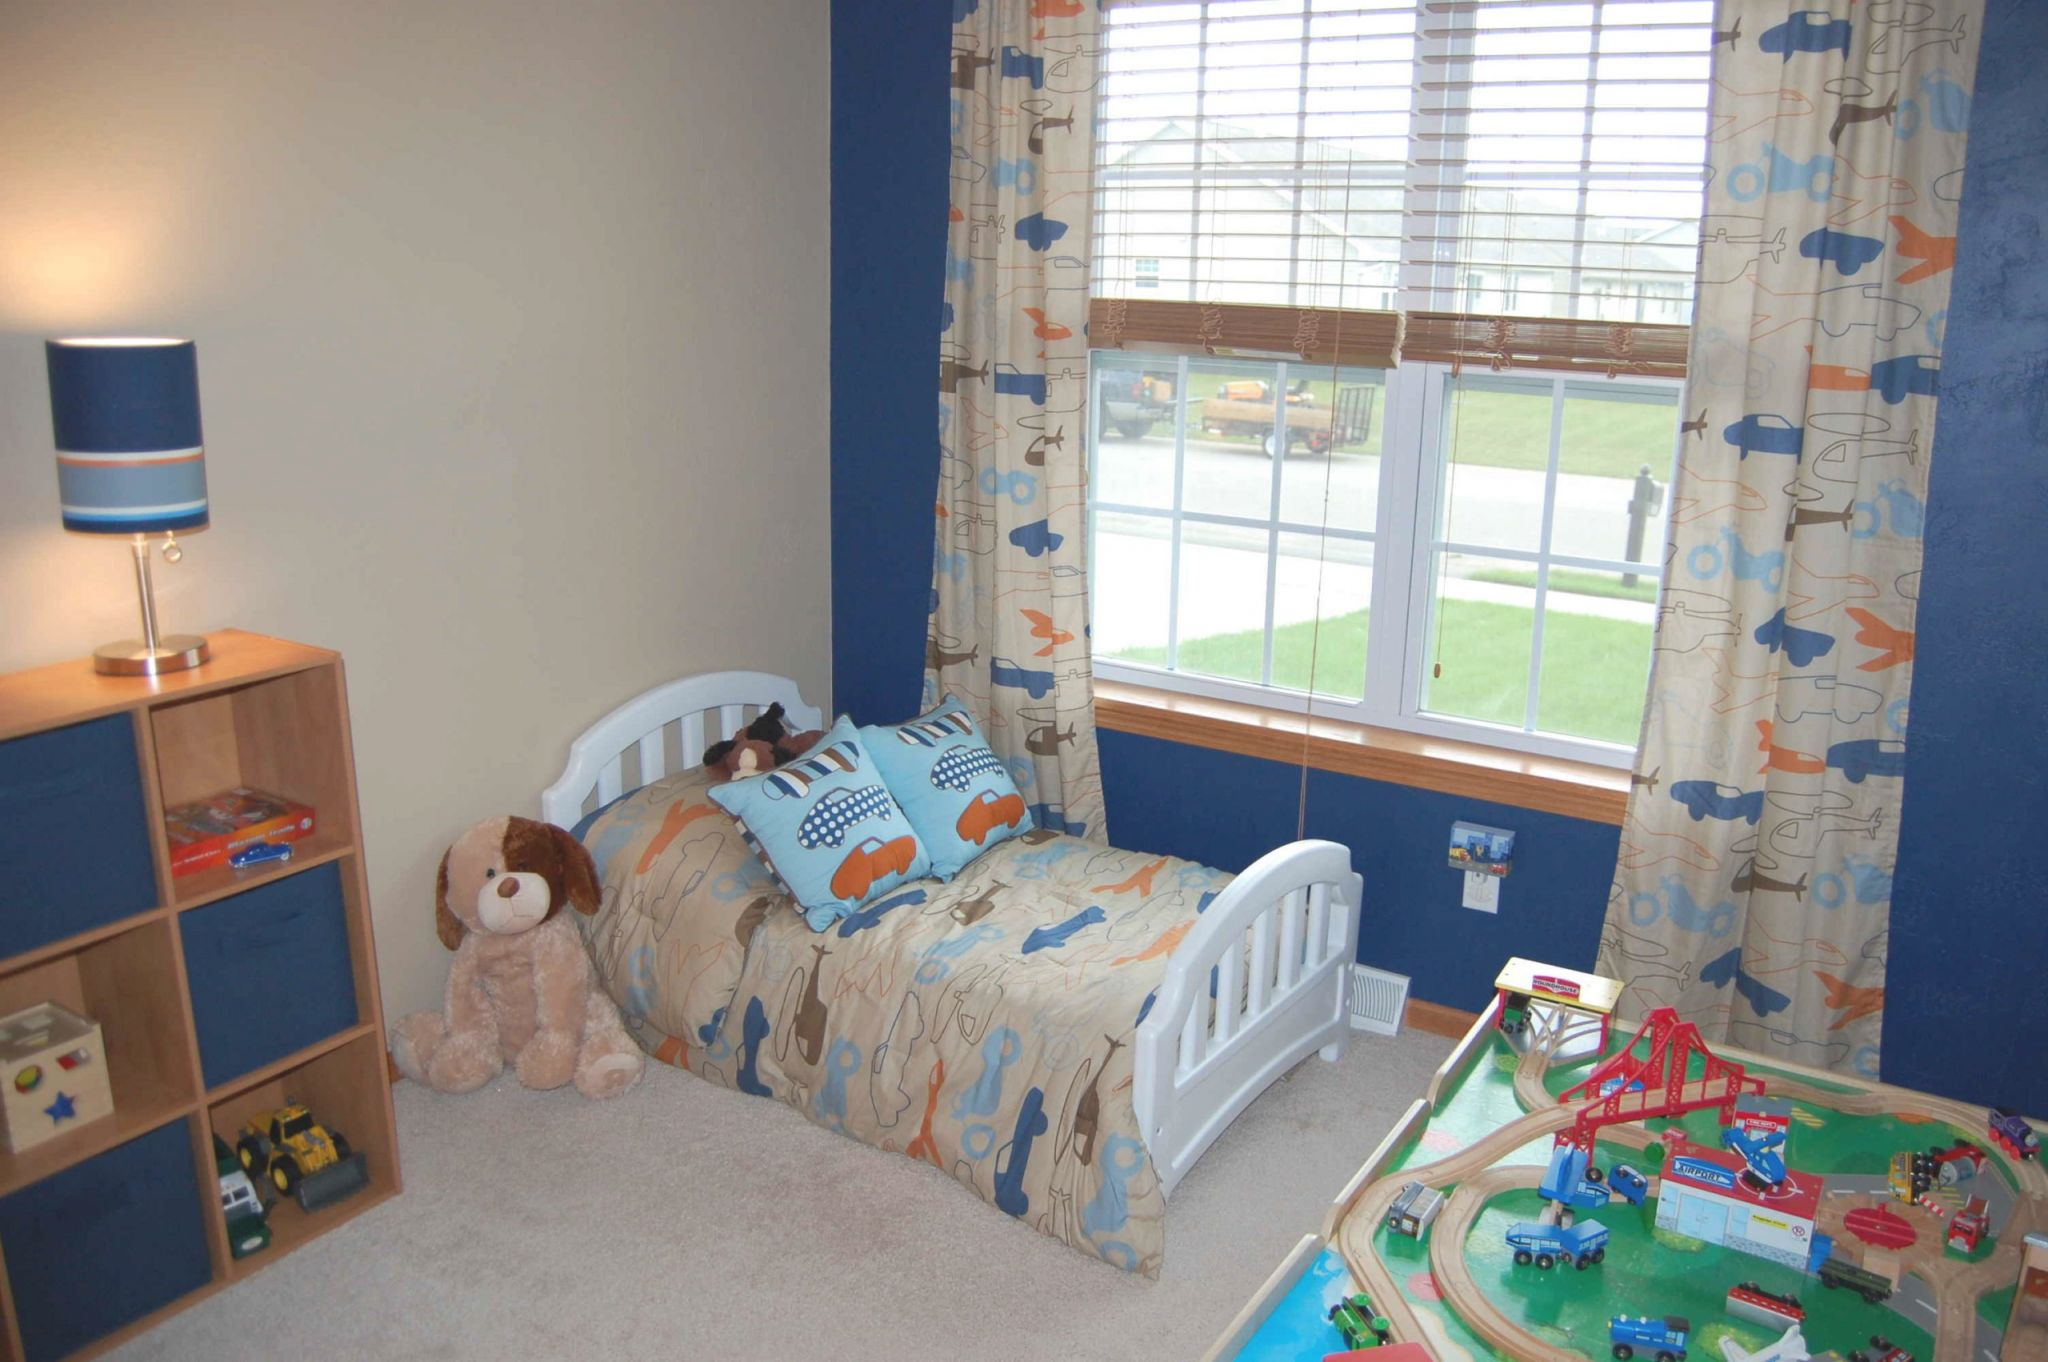 Bedroom Ideas Simple Boy Room Kids Decorating Little Idea With